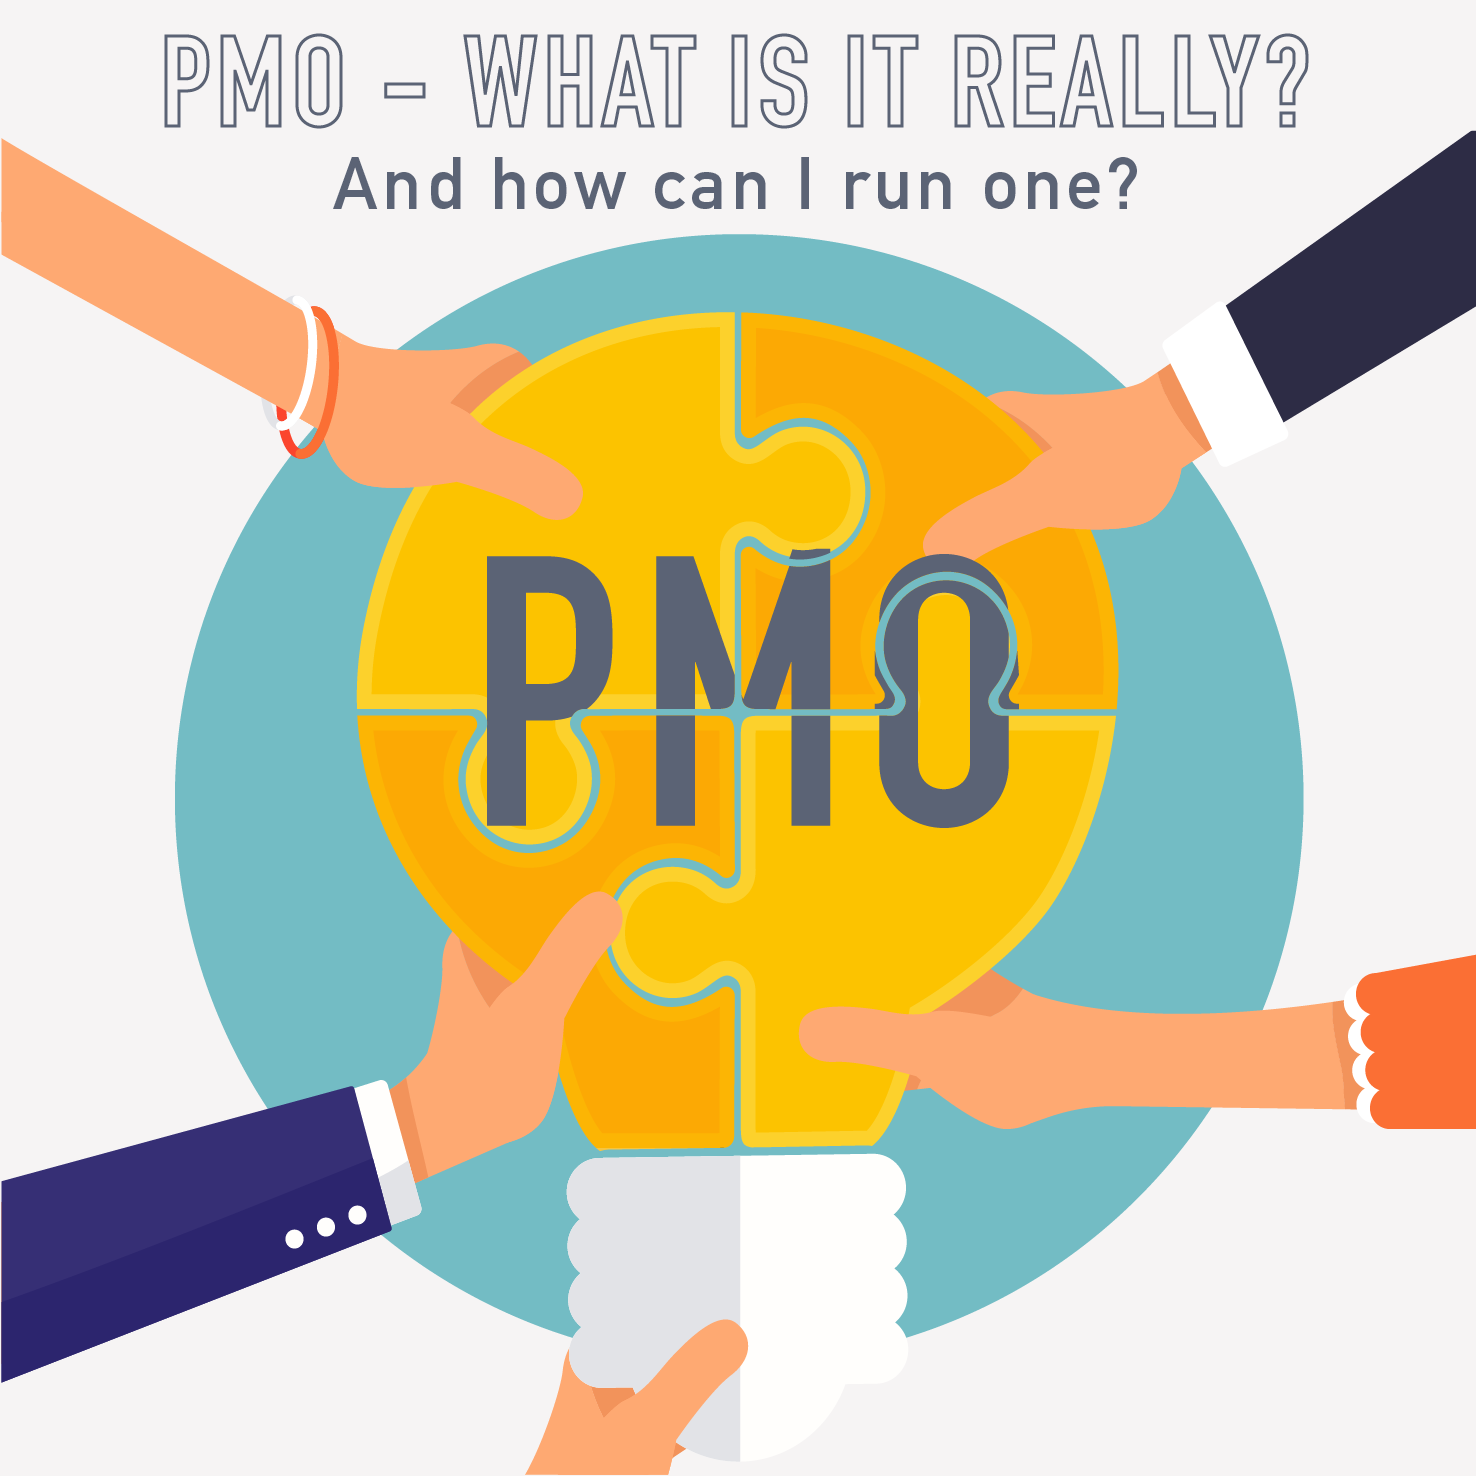 036 – PMO – What is it really? And how do I run one?